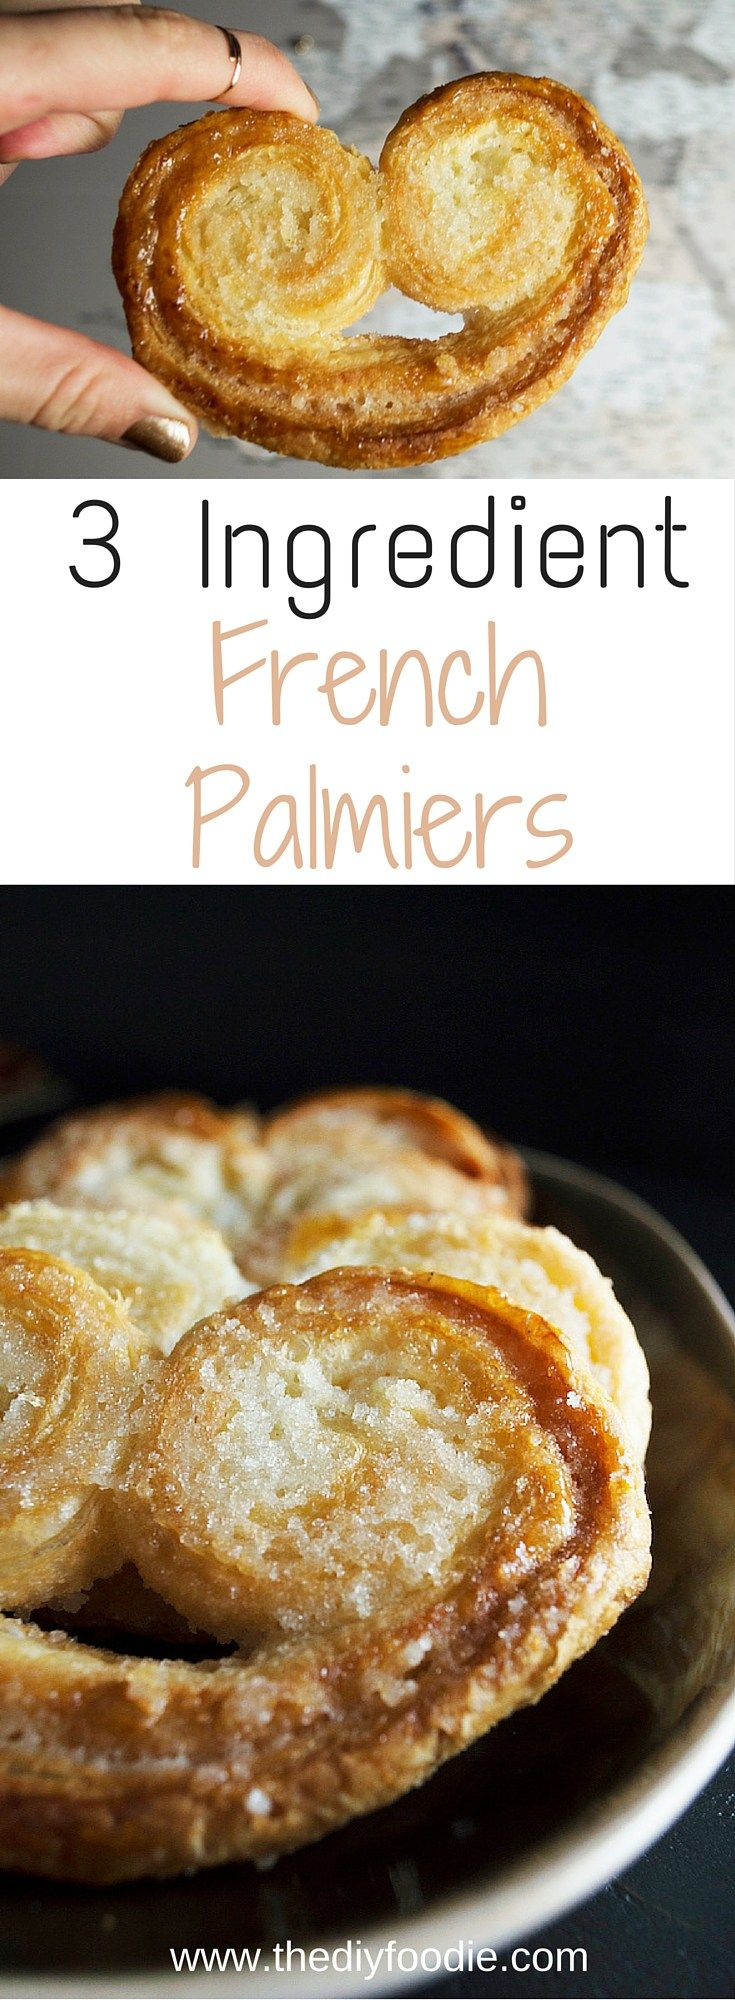 These 3 ingredients Palmiers and deliciously easy. The perfect treat for when I'm really missing the pastries from France!